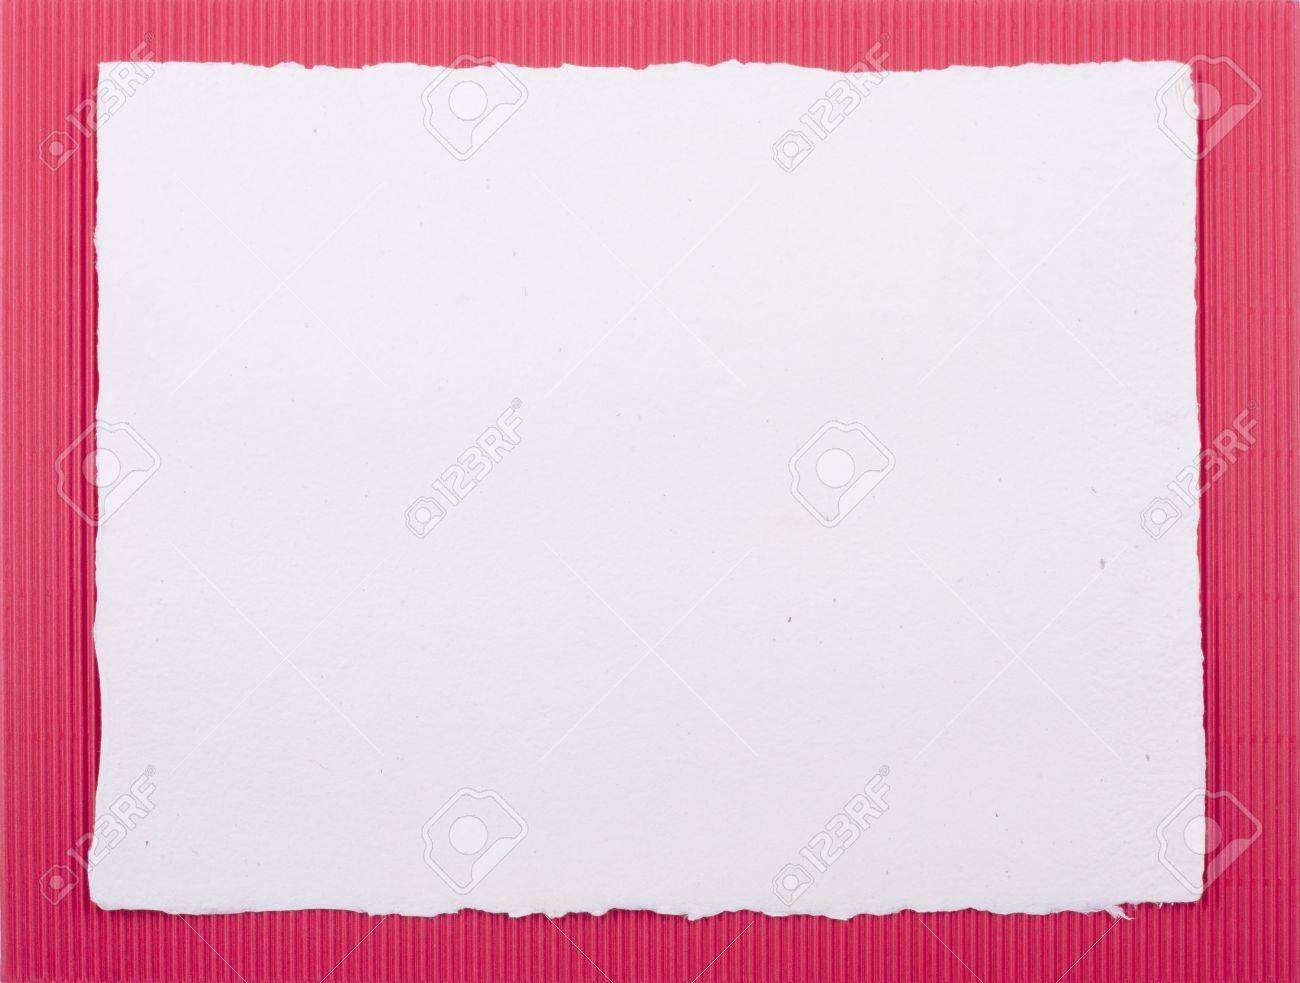 Colored Cardboard Background With Handmade White Paper Frame.. Stock ...